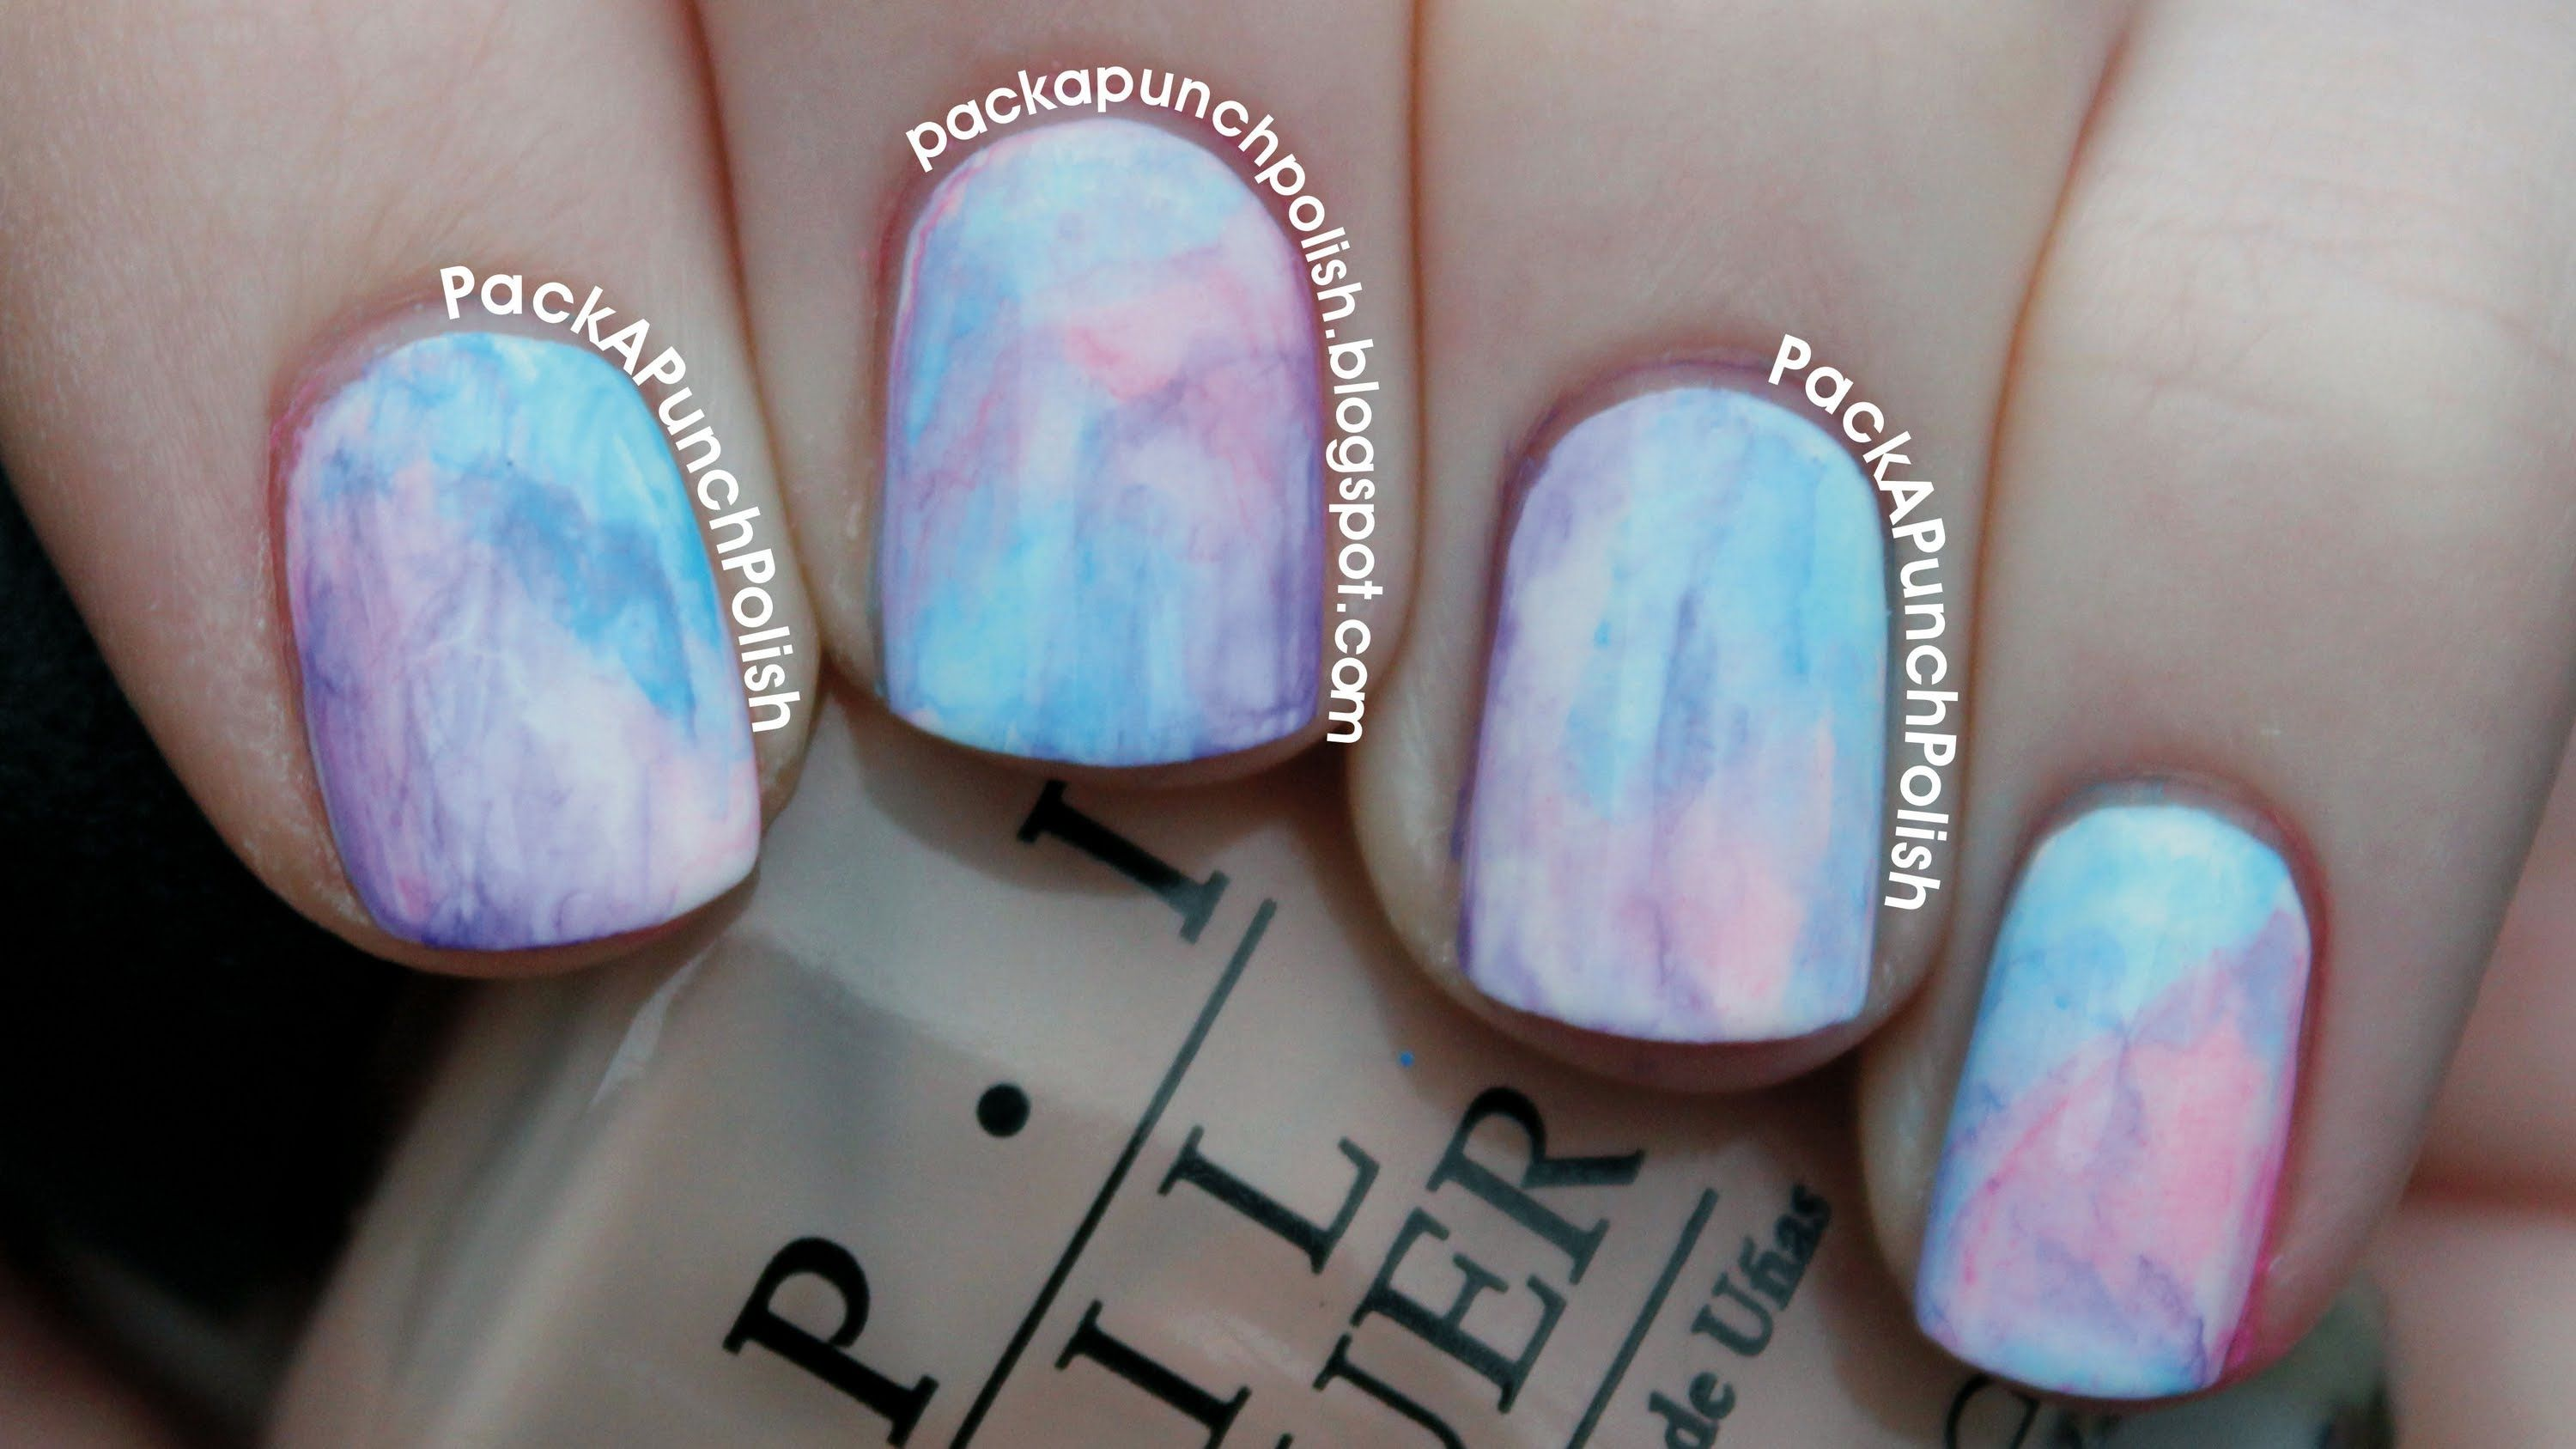 Watercolor Nail Art Tutorial Using Acrylic Paint | Nails | Pinterest ...